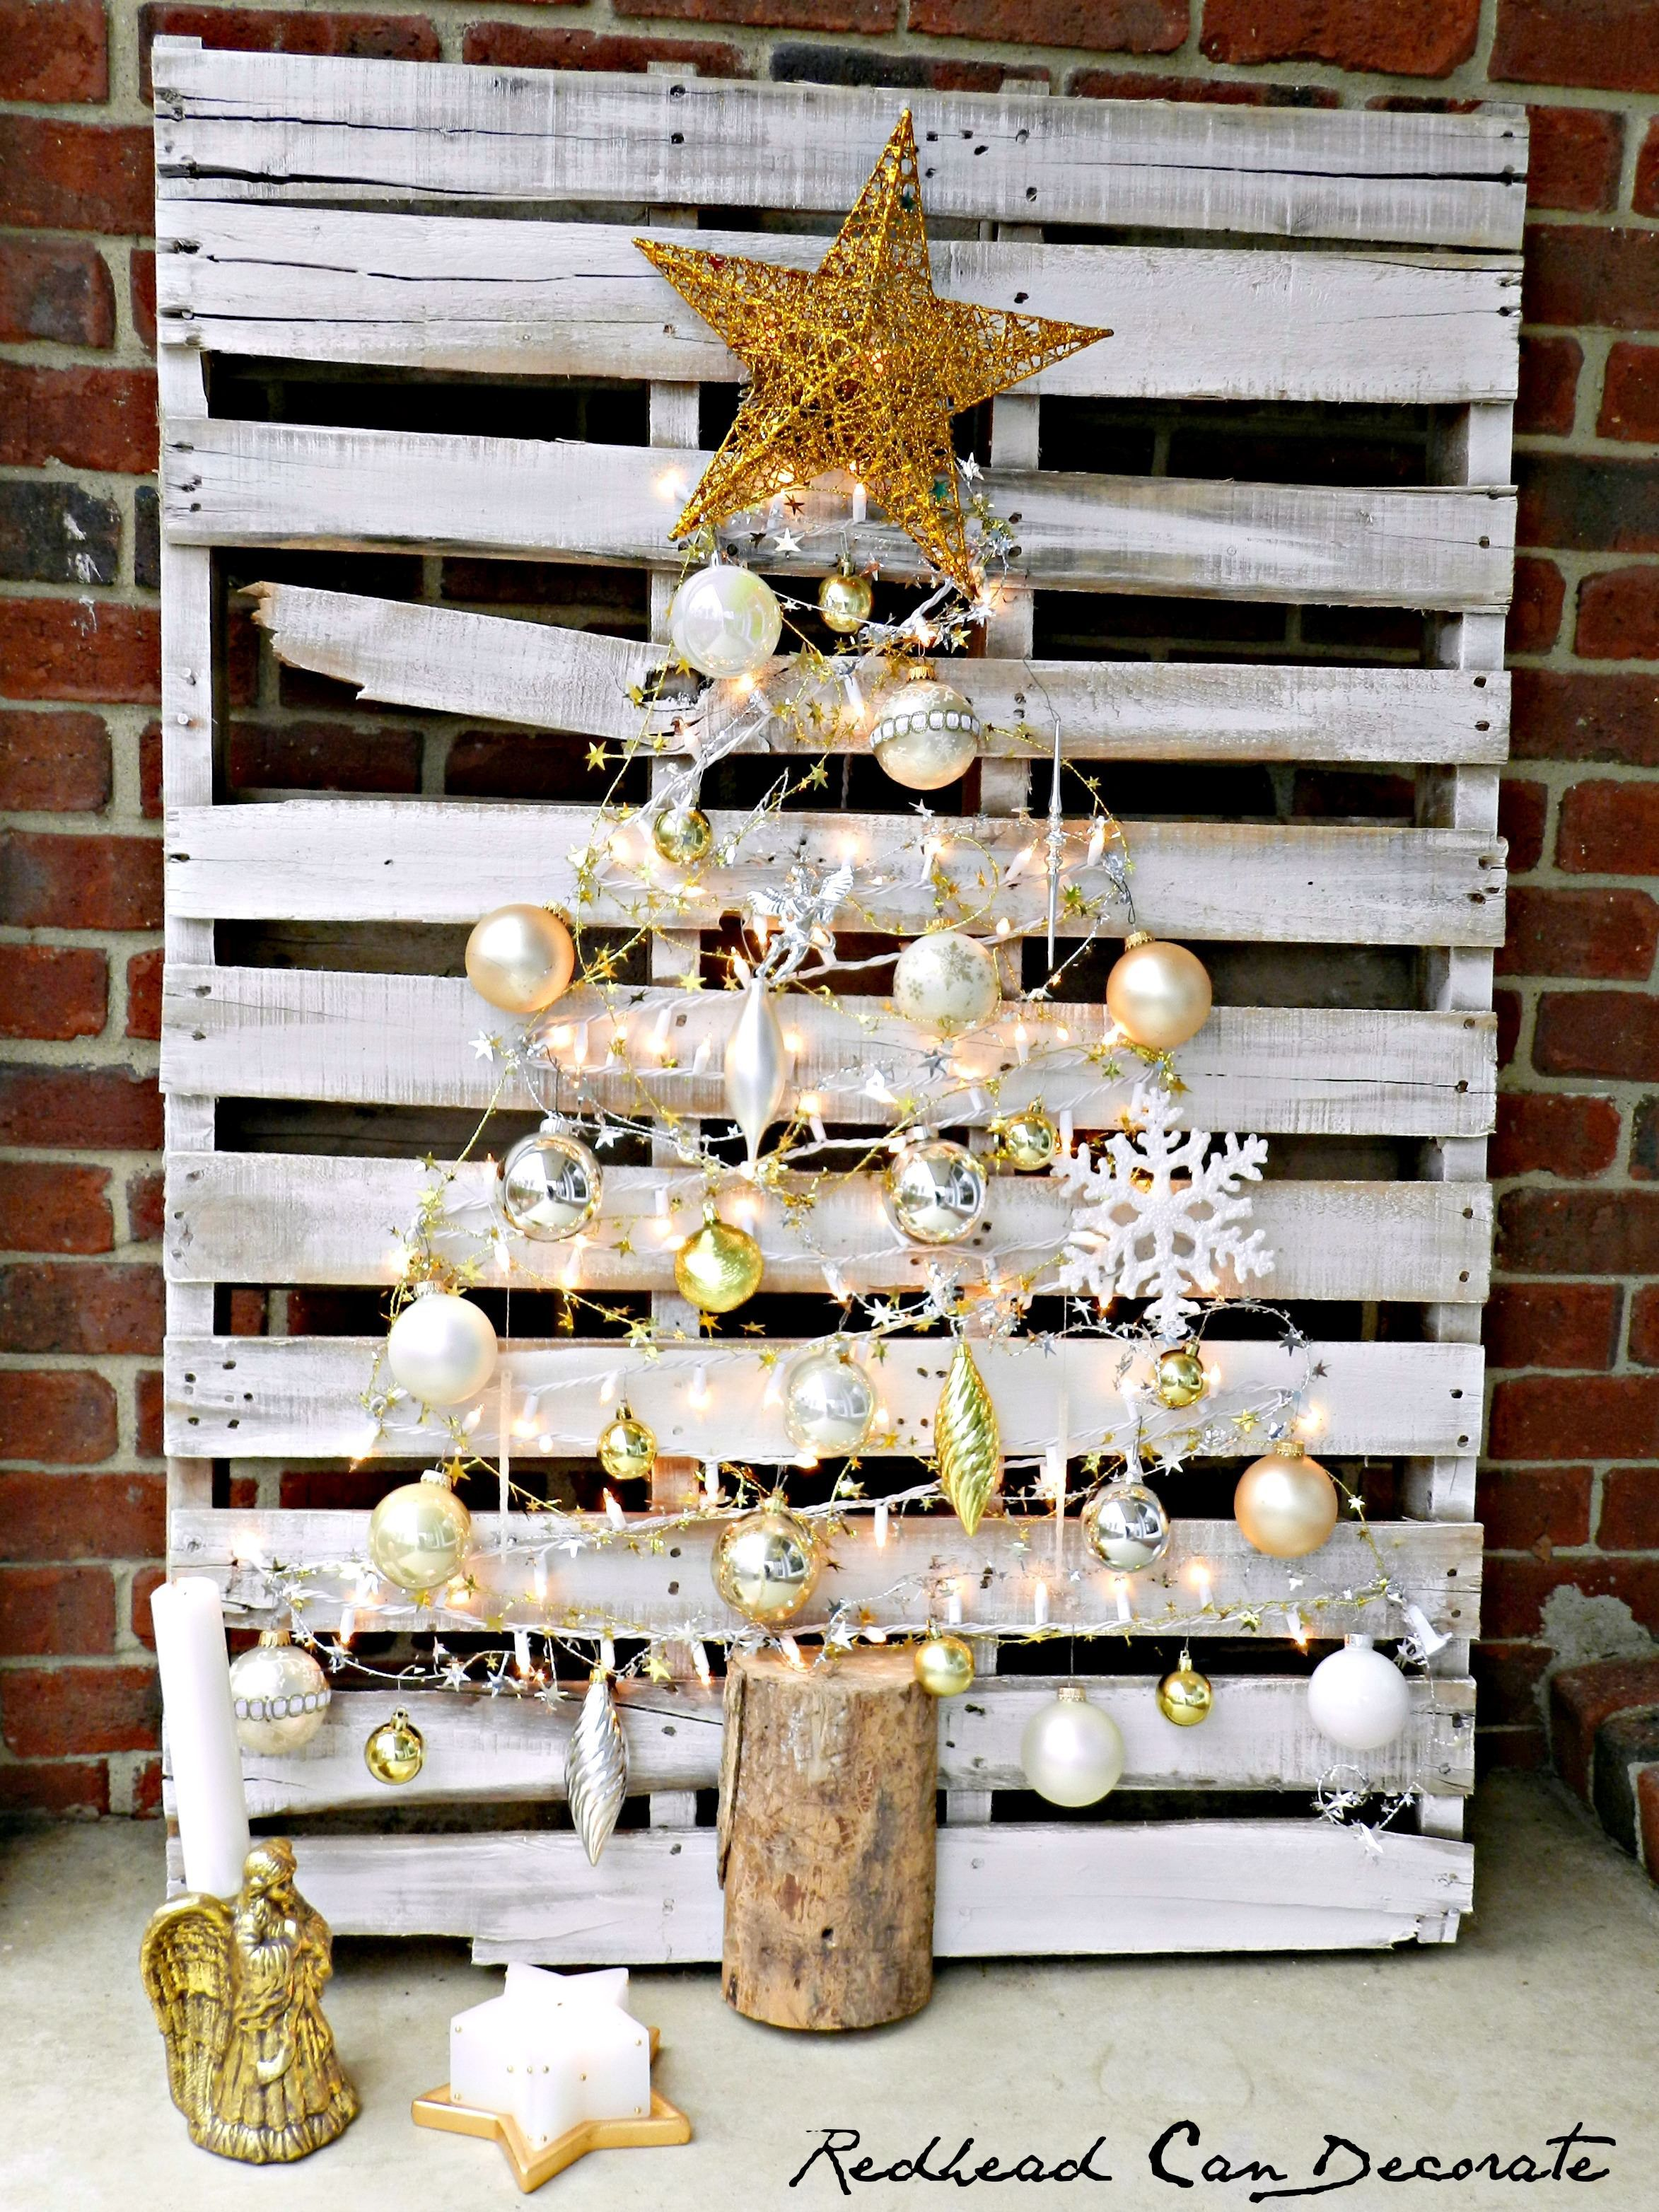 How to Make a Pallet Christmas Tree How to Make a Pallet Christmas Tree new pictures